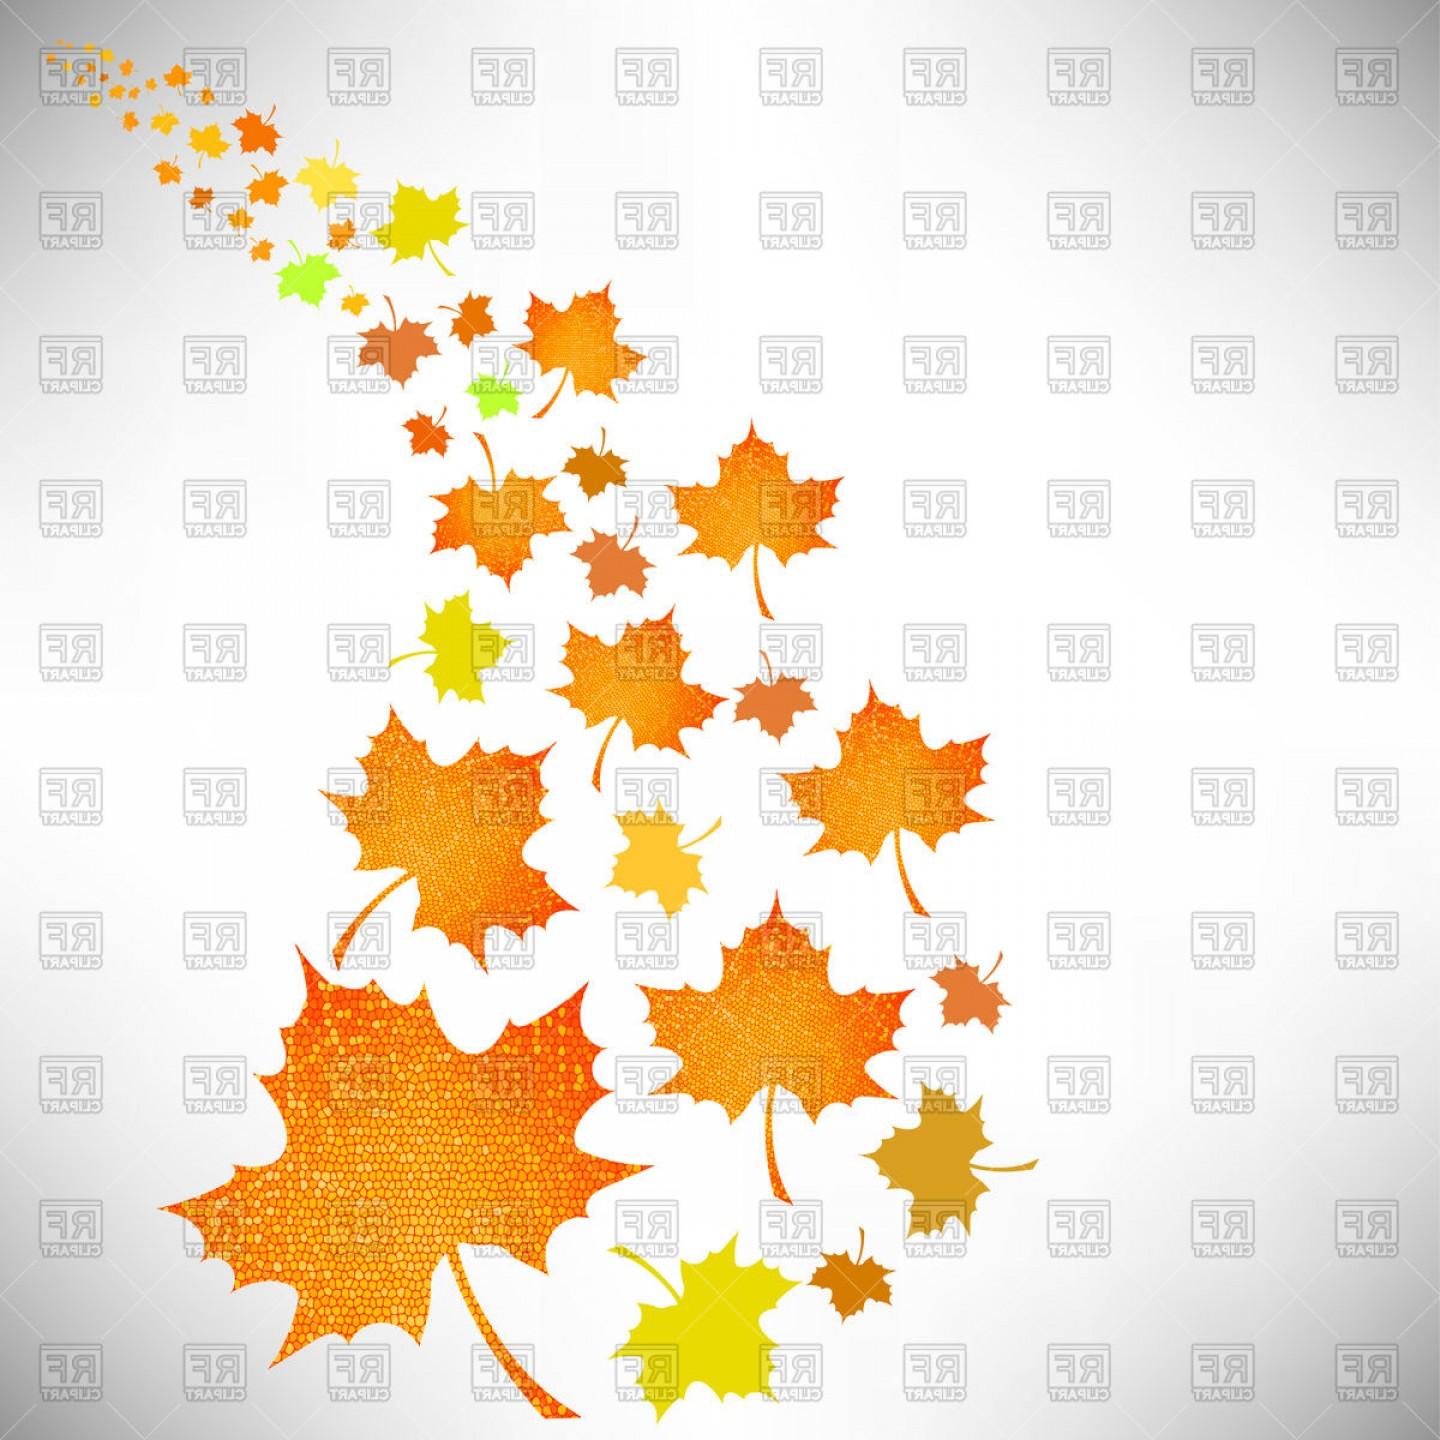 Falling autumn leaves clipart vector library library Falling Autumn Leaves Vector Clipart | SOIDERGI vector library library